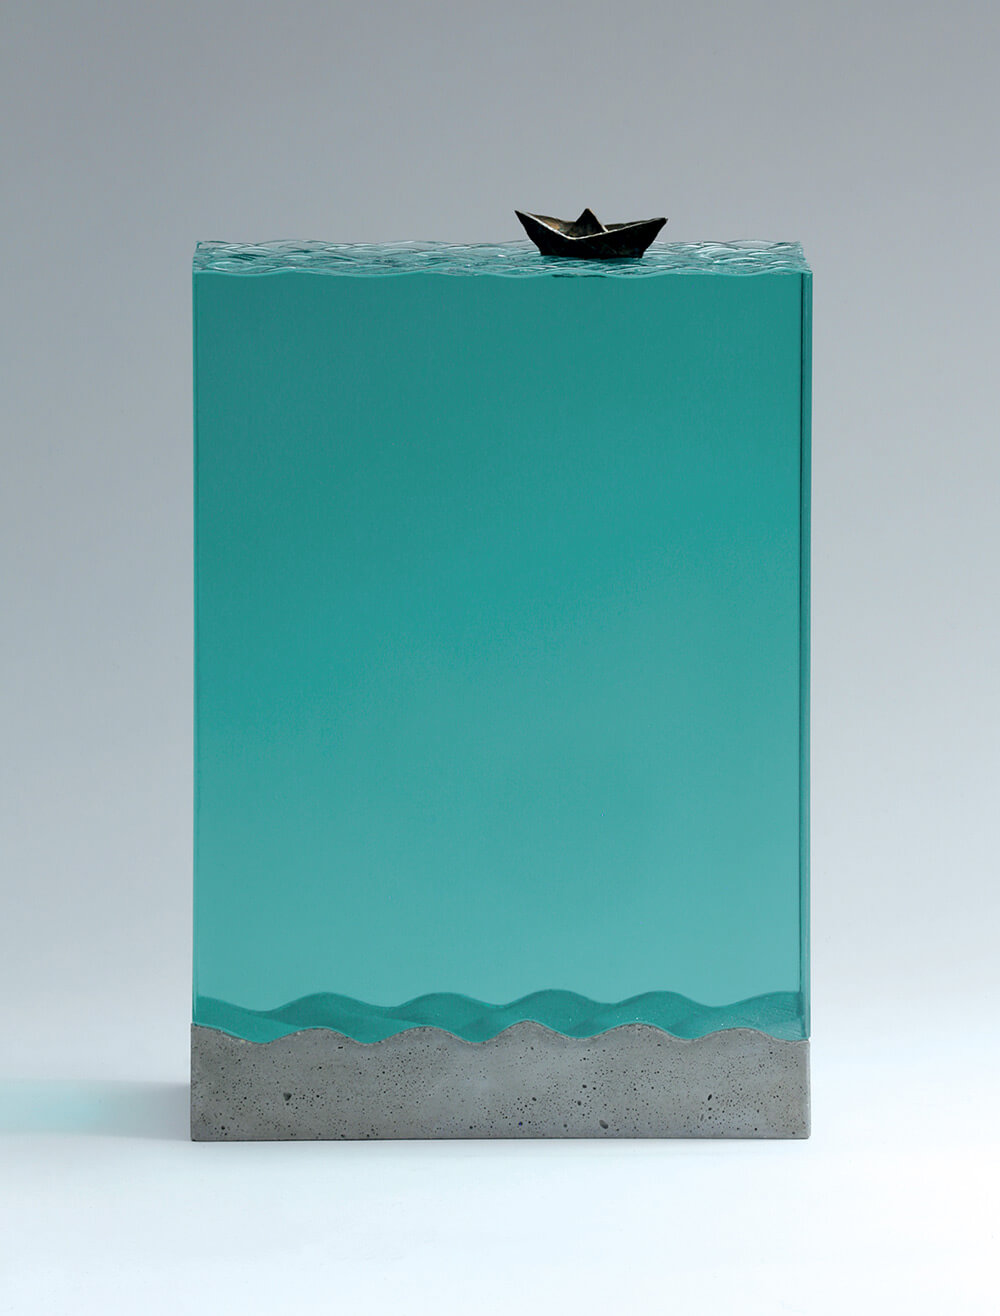 ben young layered glass art 5 (1)